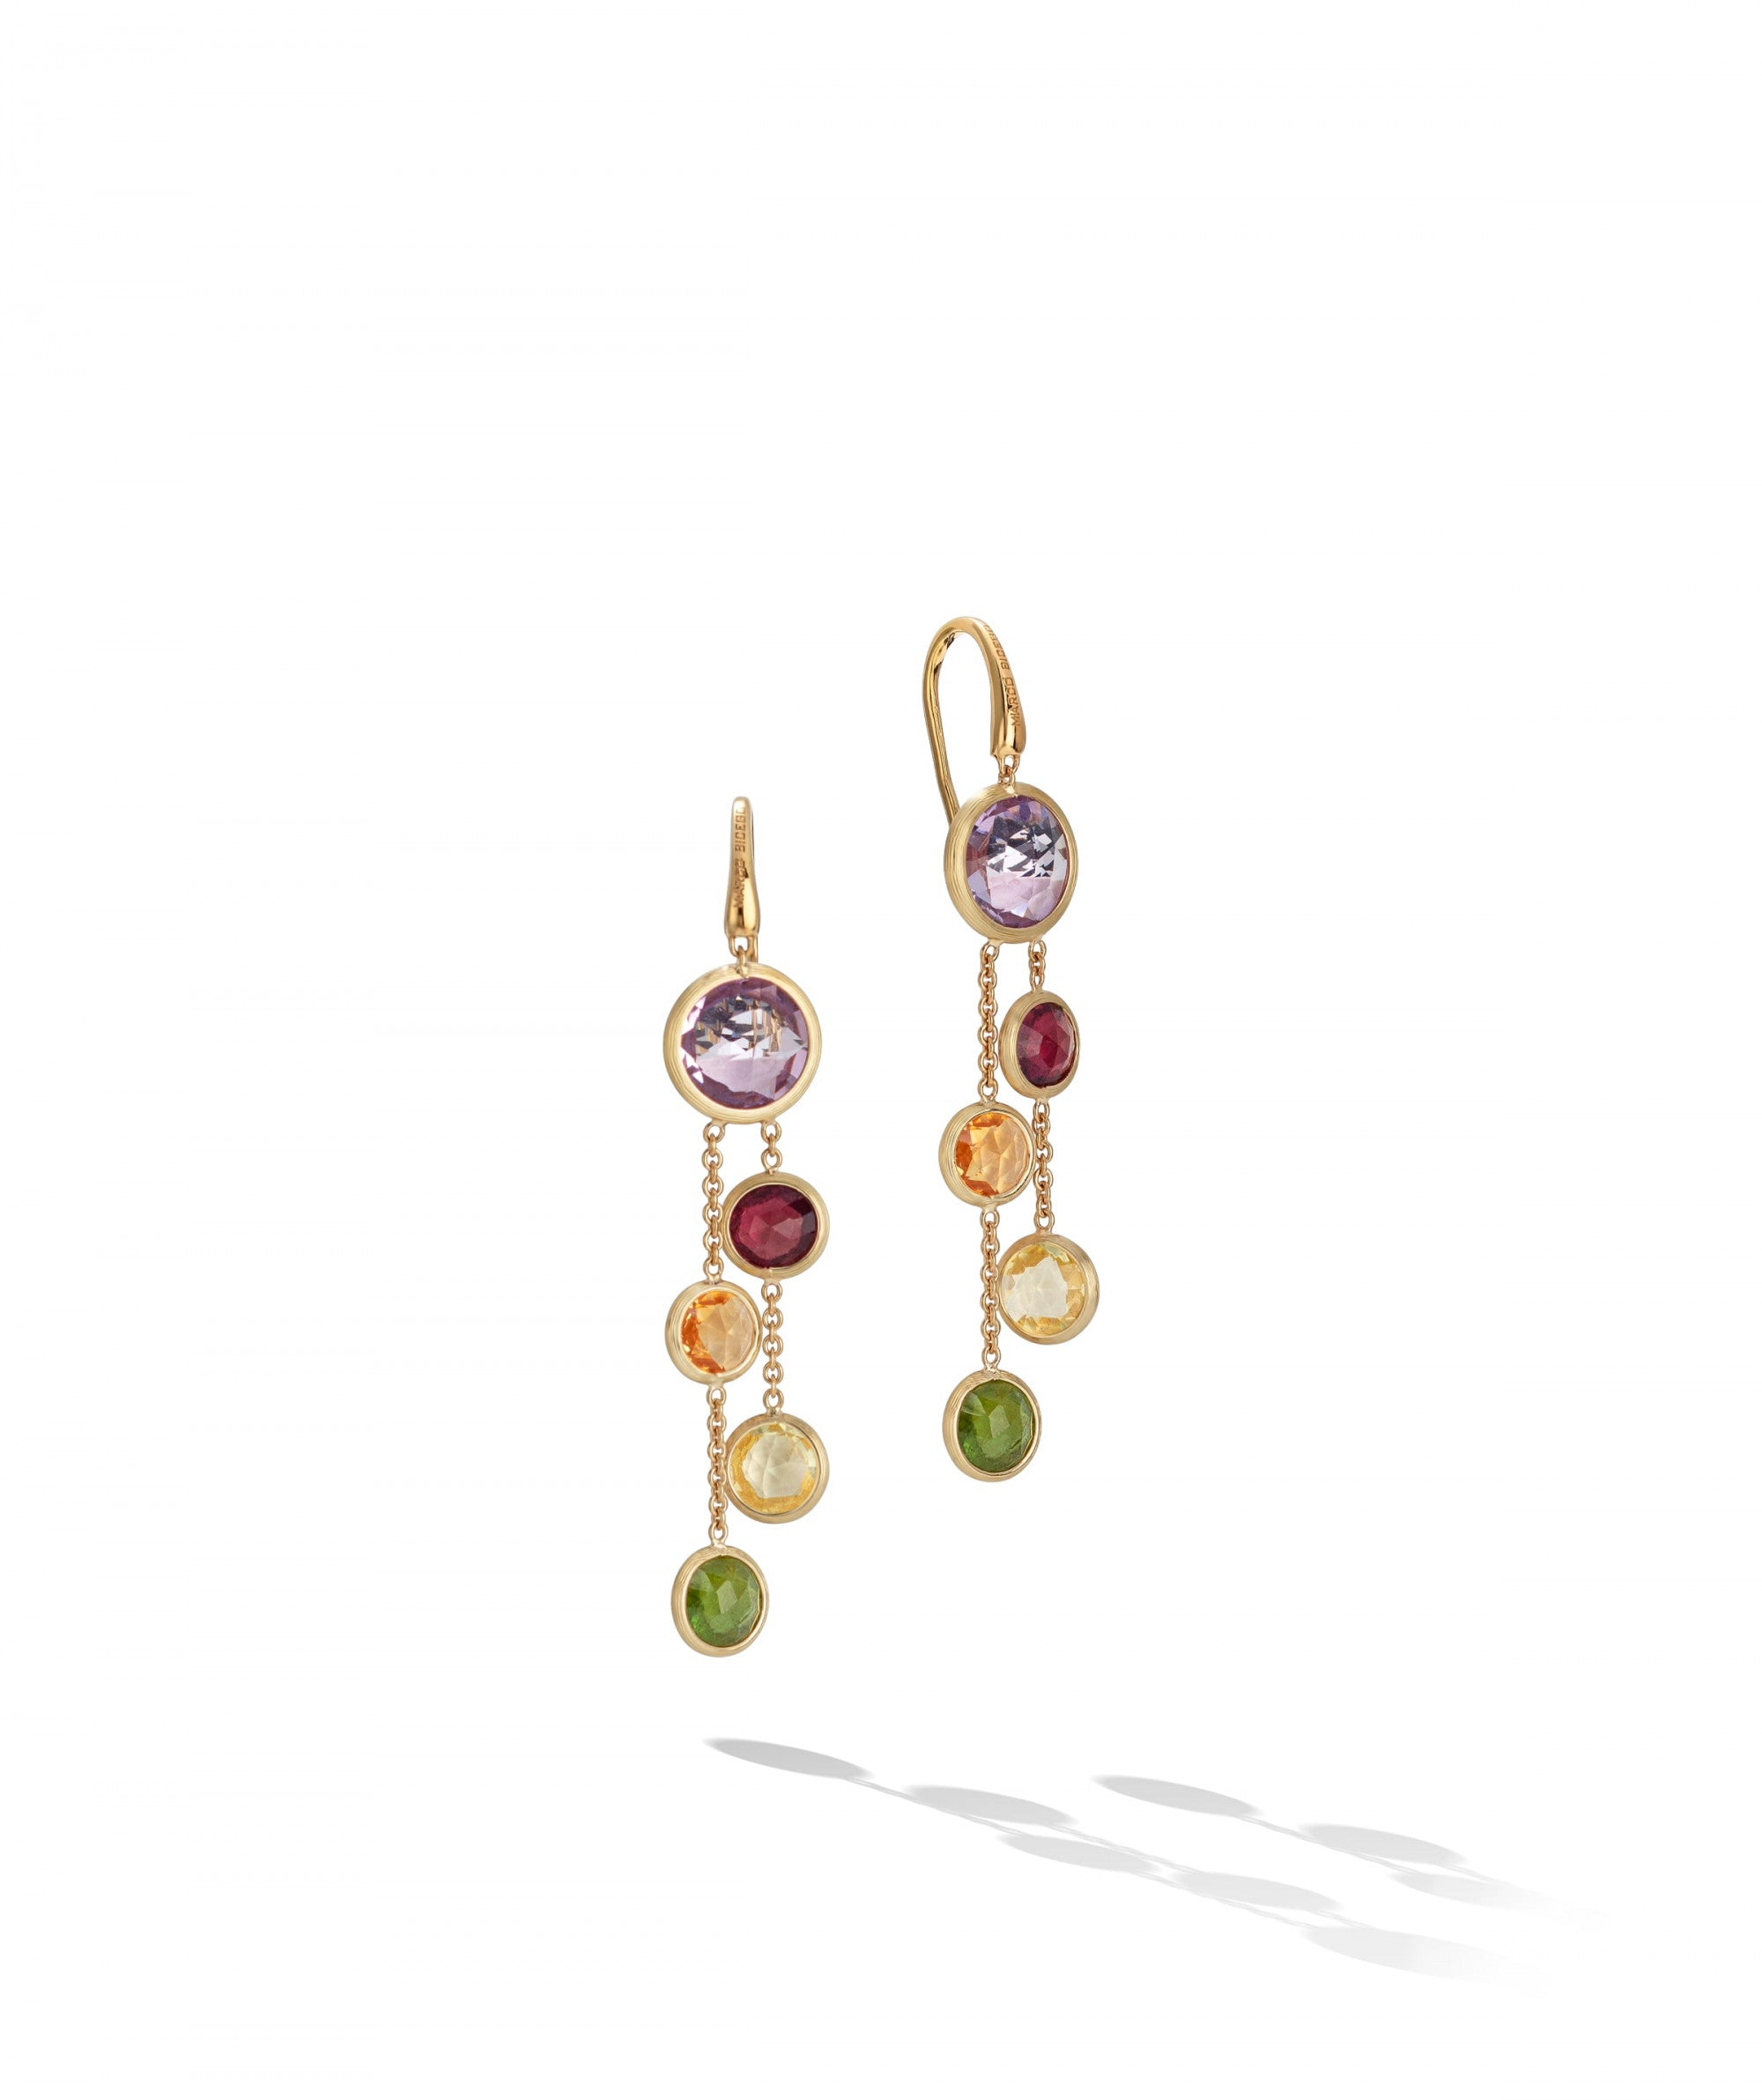 Jaipur Colour Drop Earrings with French Hook in 18k Yellow Gold with Mixed Gemstones - Orsini Jewellers NZ